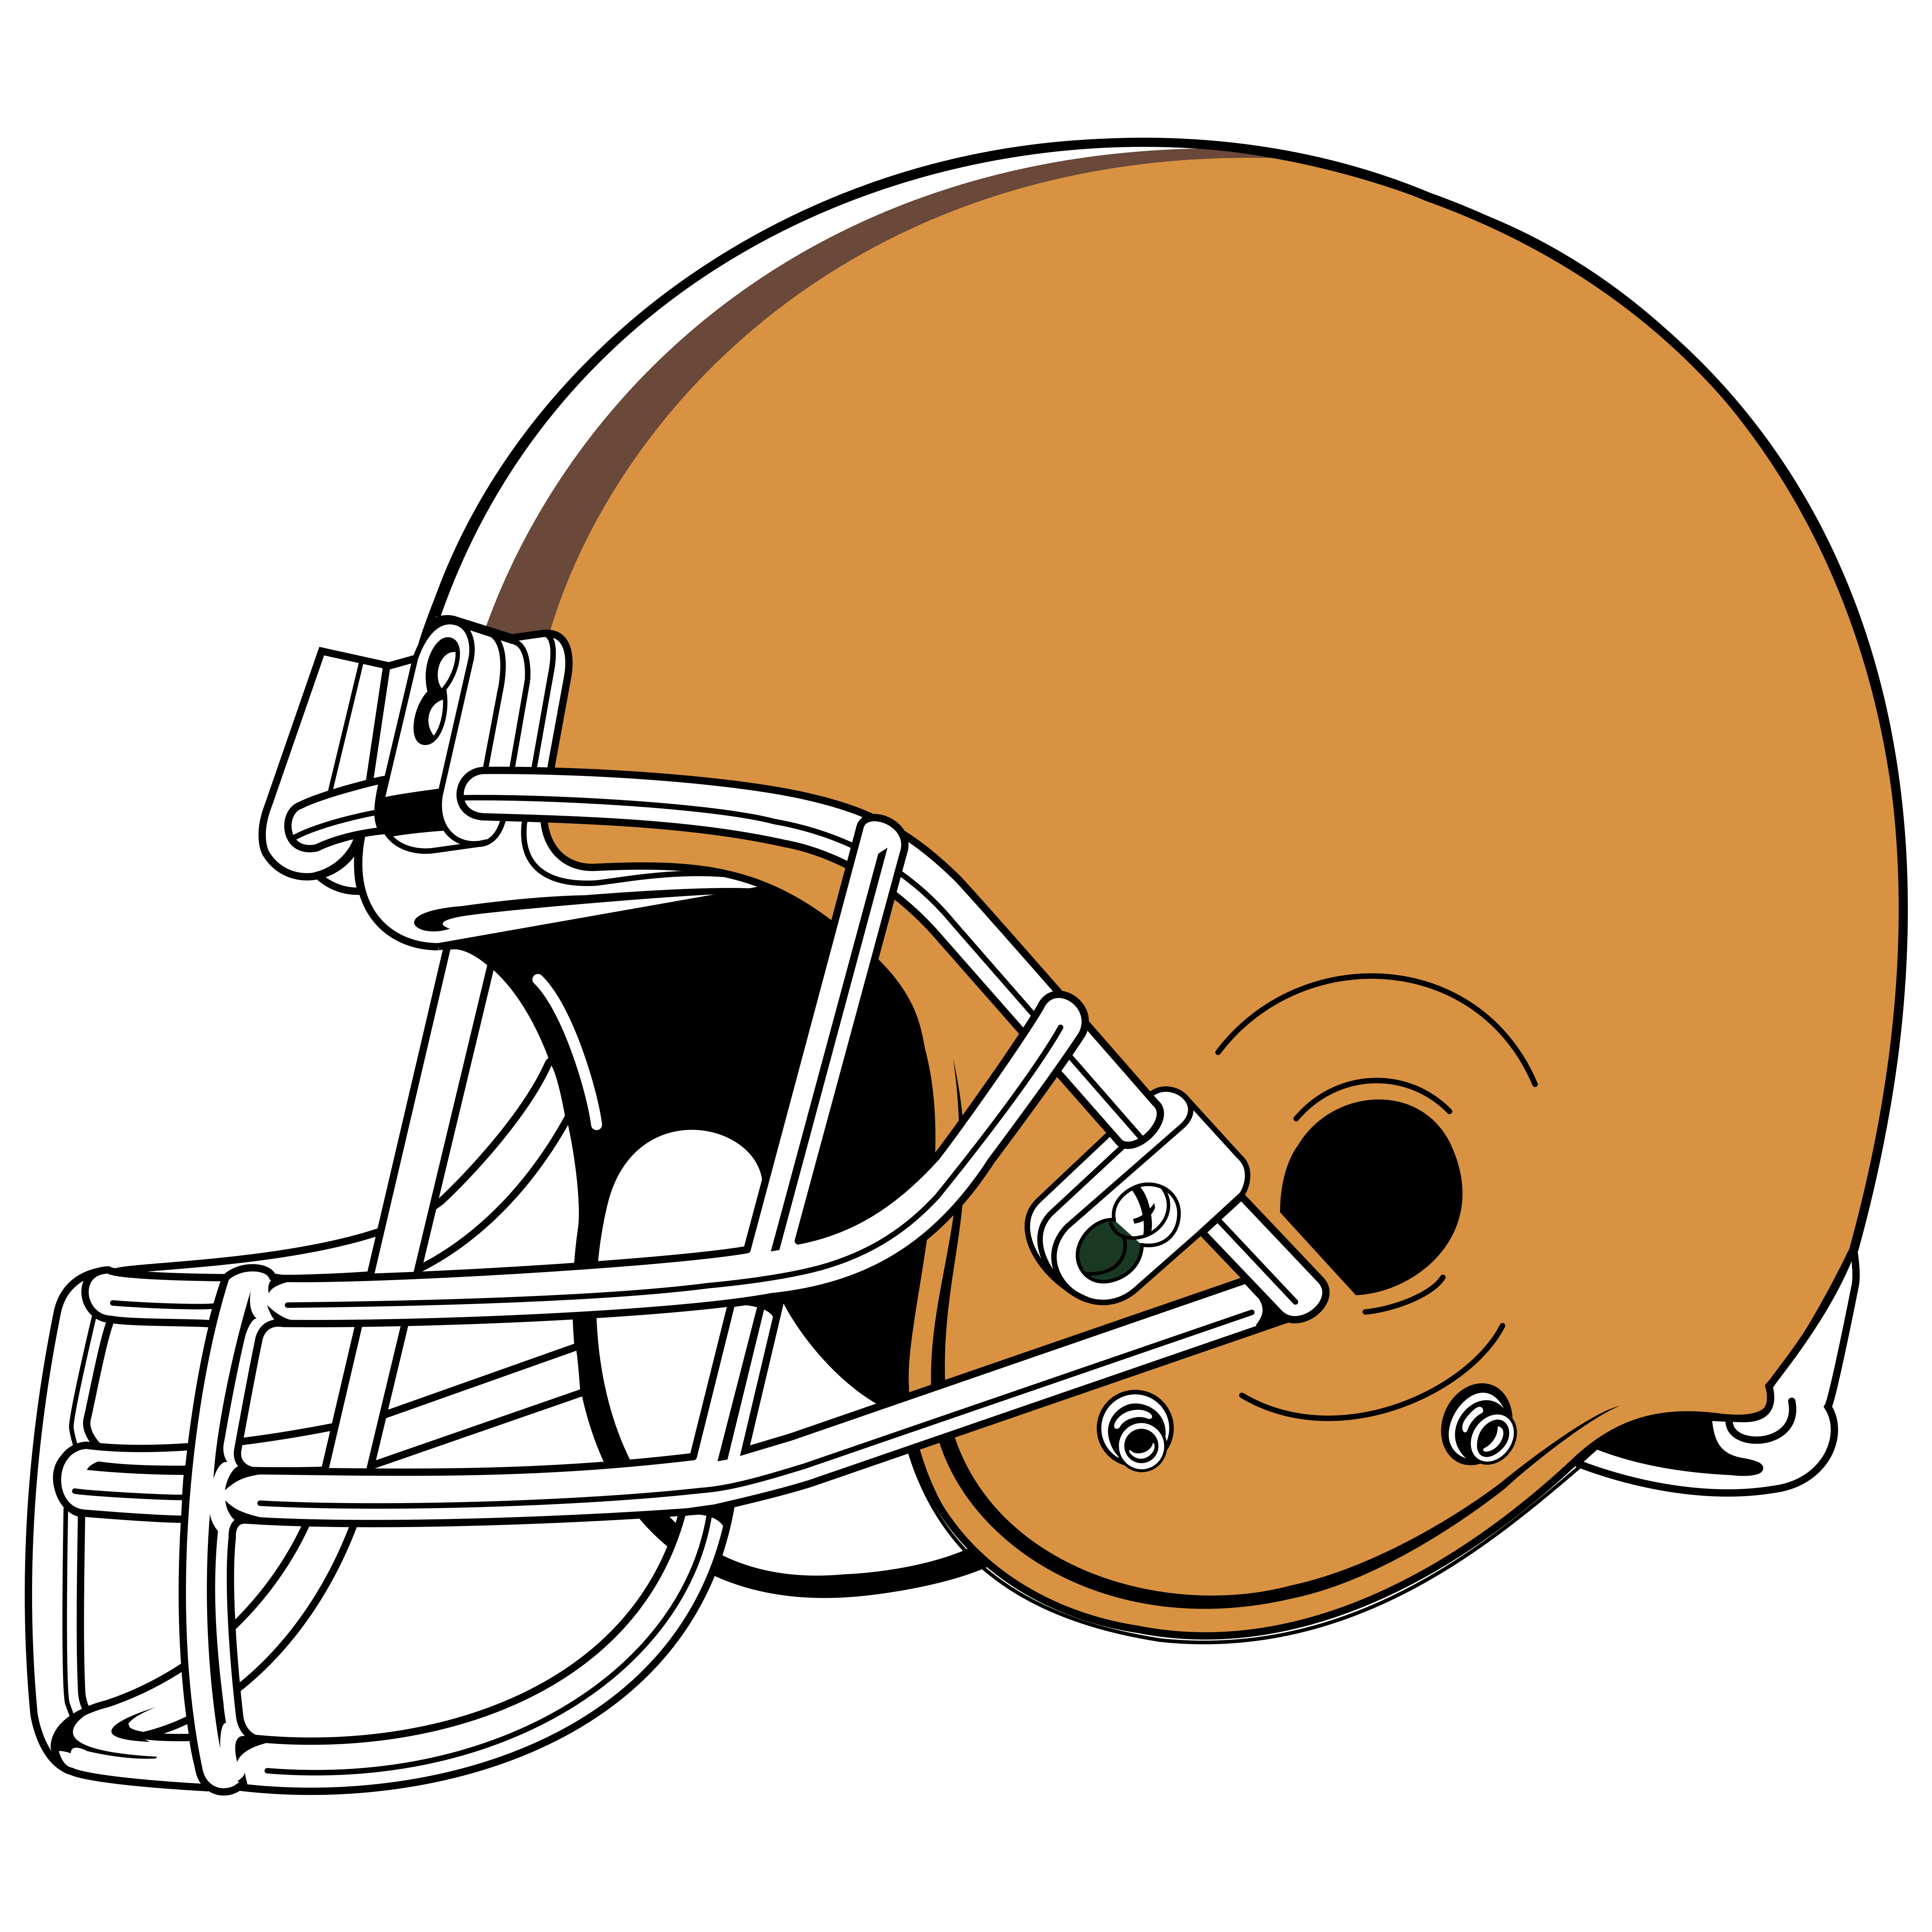 Cleveland Browns Logos Download